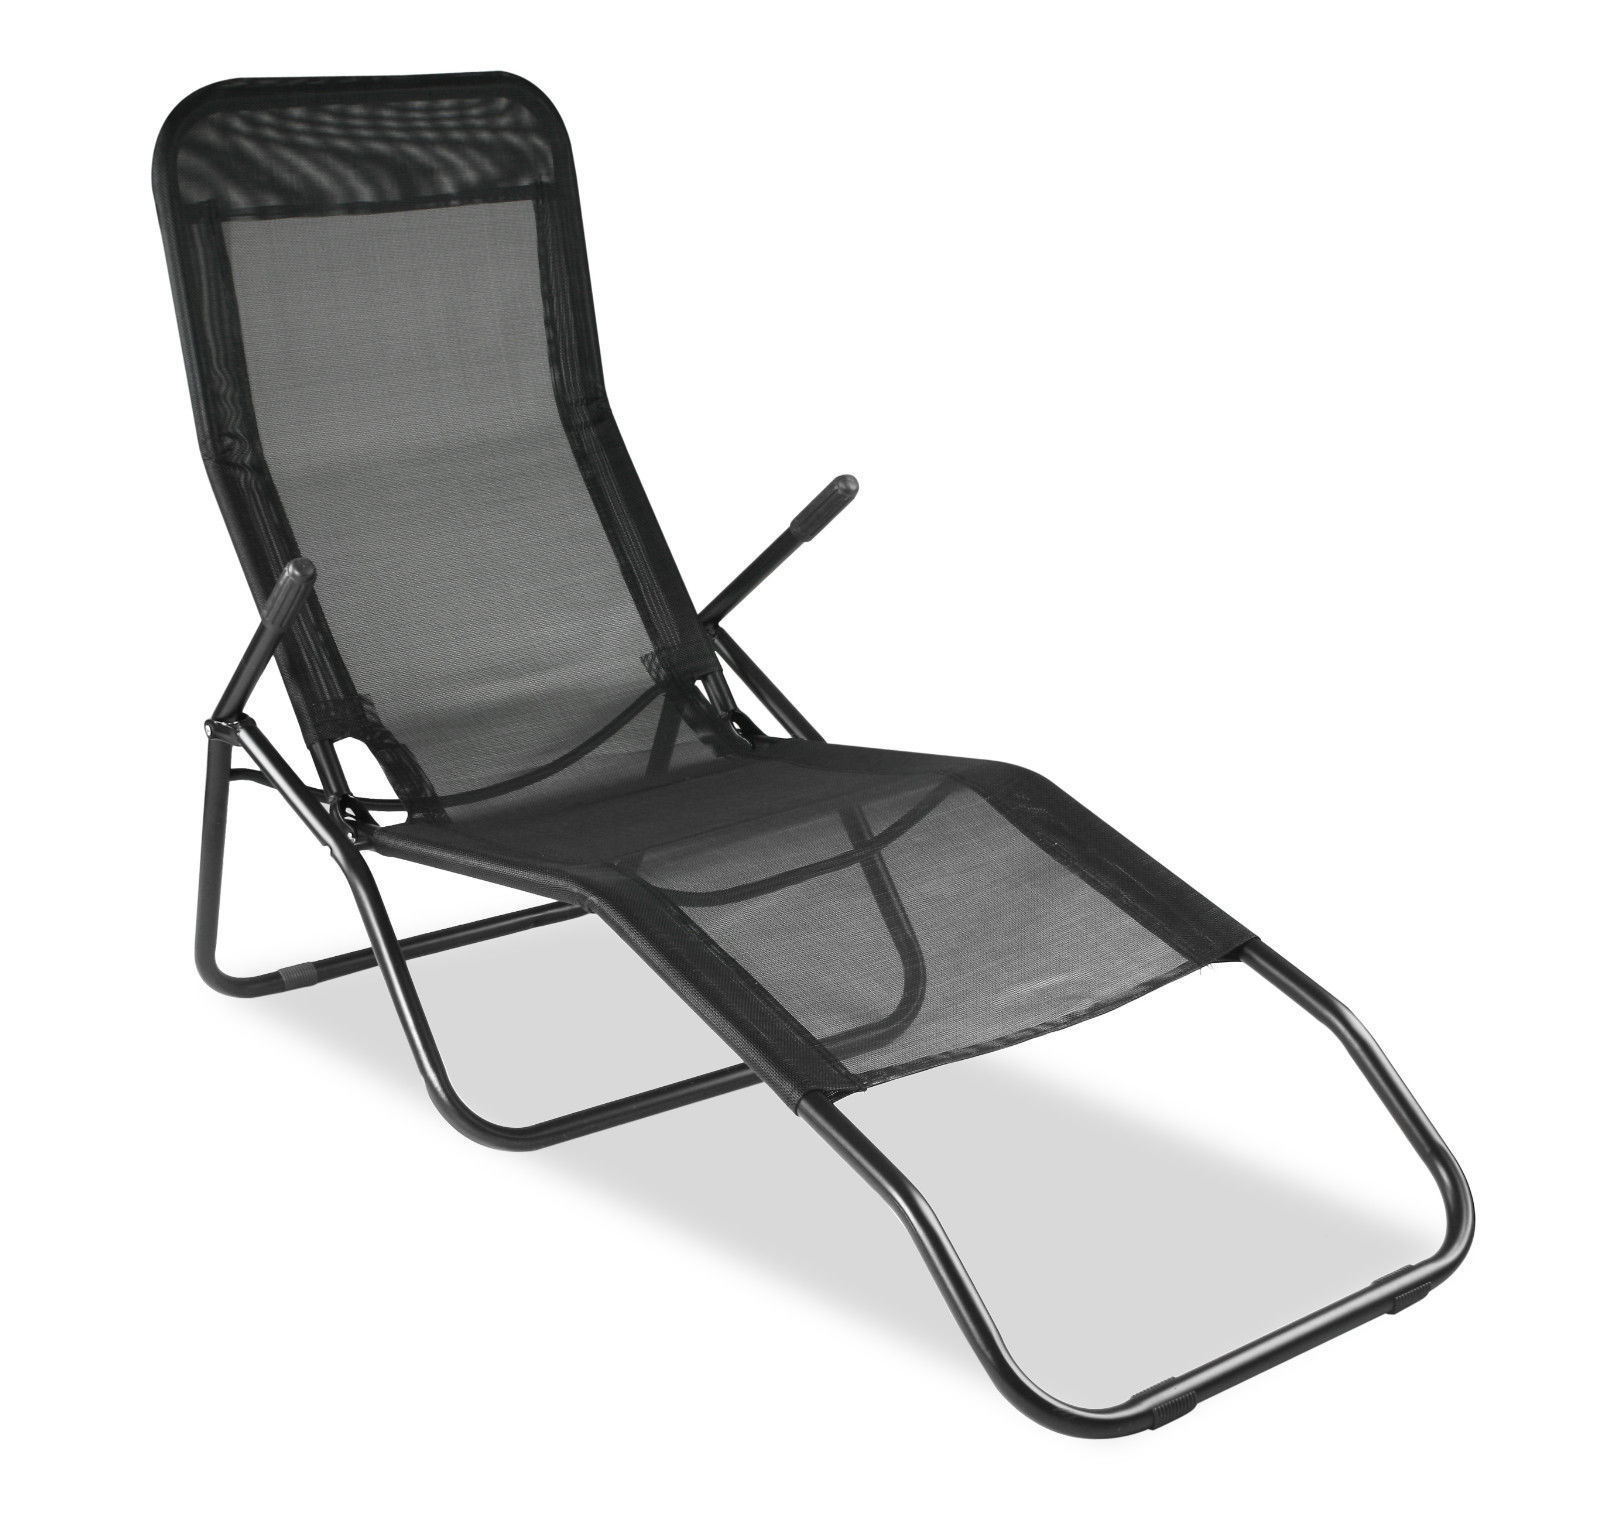 NEW GARDEN RECLINER CHAIR FOLDING SUN LOUNGER W ARMREST